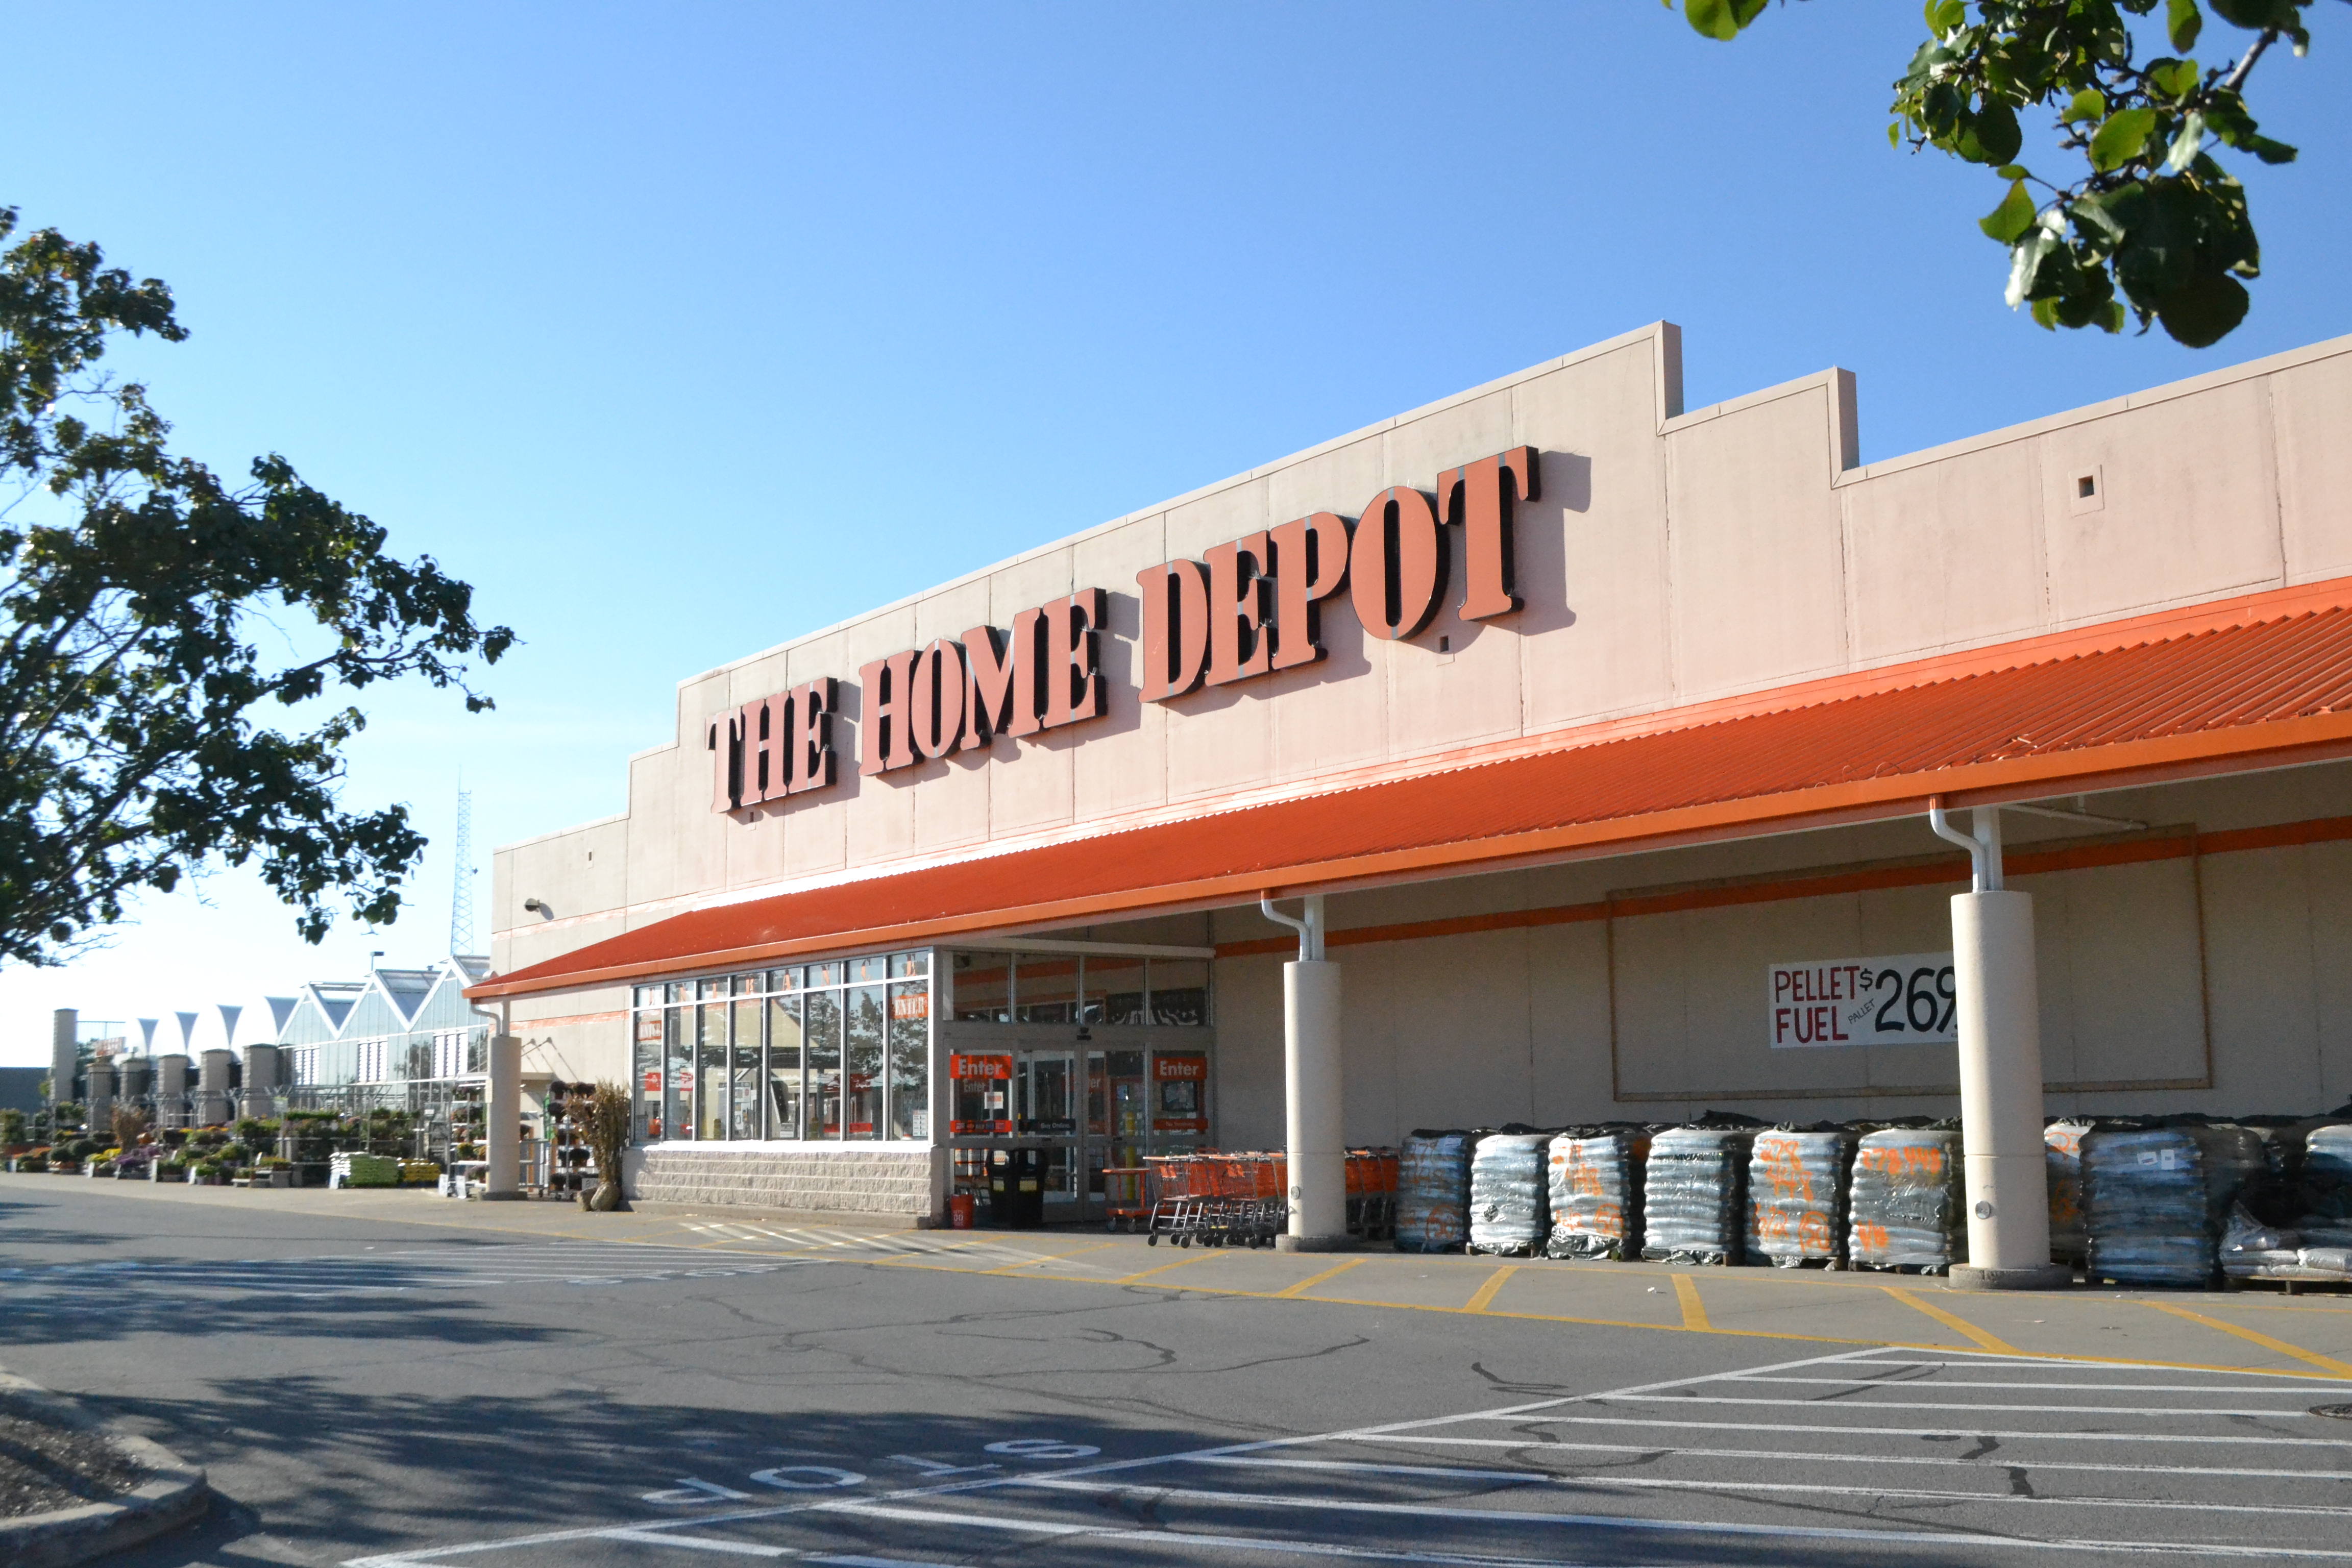 Home depot penfield ny 28 images homedepot the home for Home depot glassdoor